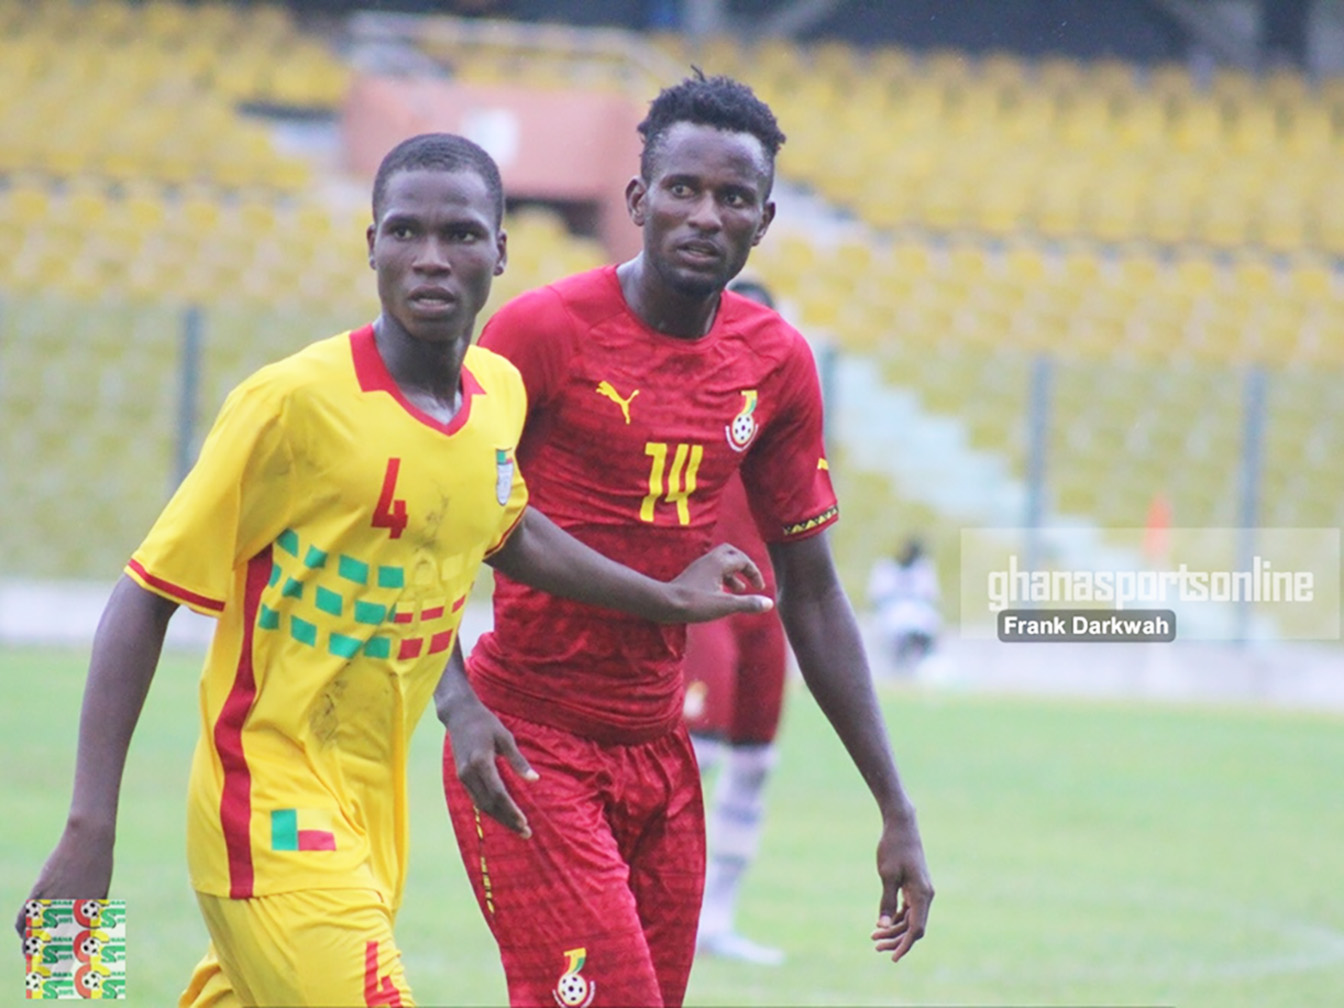 Ghana trounces Nigeria 4-1 to win WAFU Cup